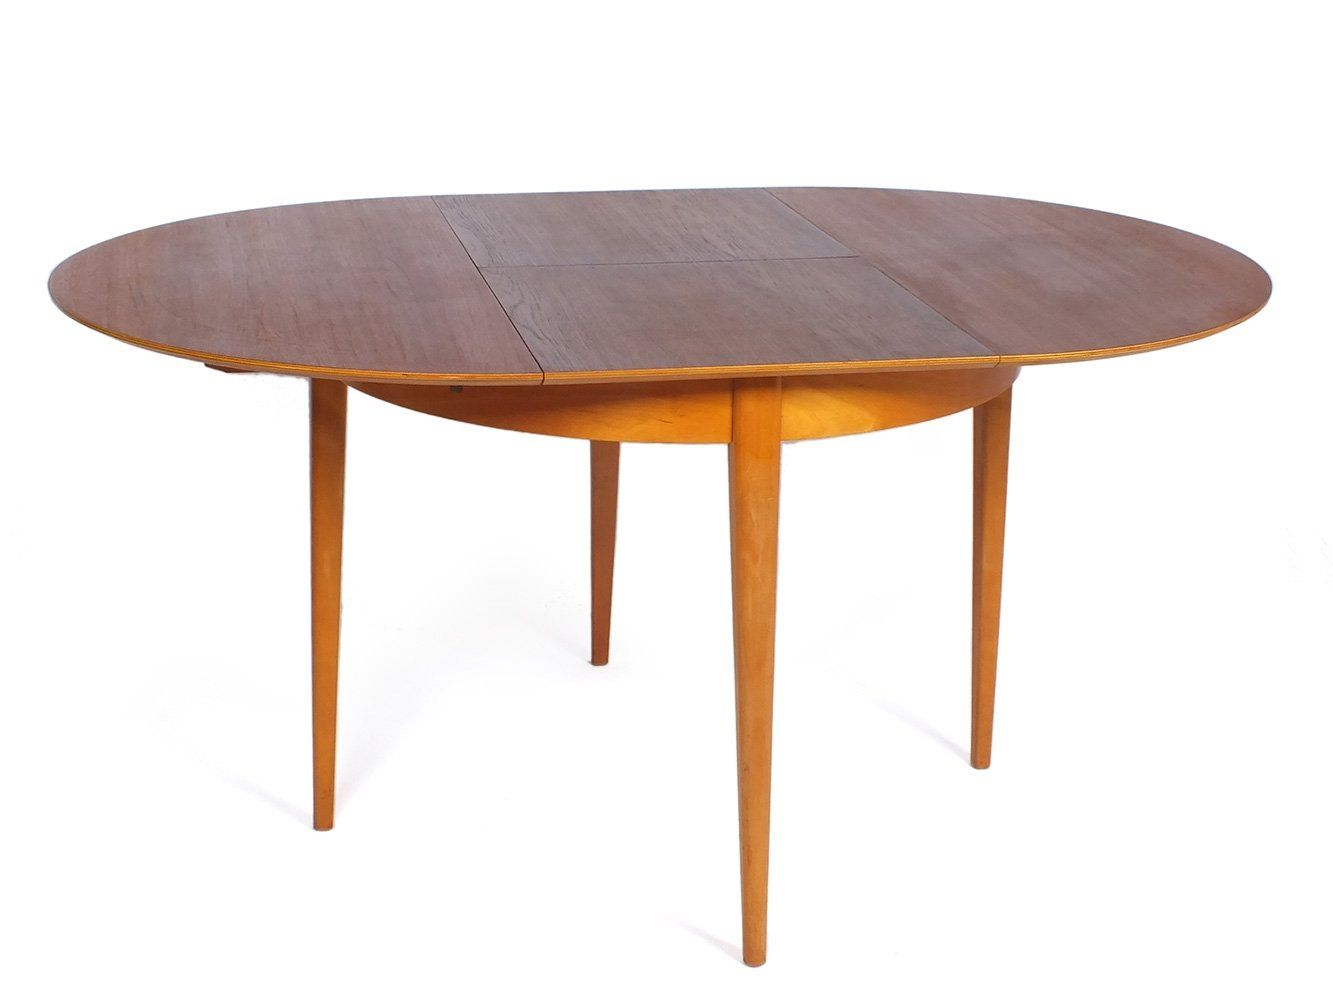 For Sale Tb35 Extendable Round Teak Oak Table By Cees Braakman For Ums Pastoe Table Oak Table Table Design